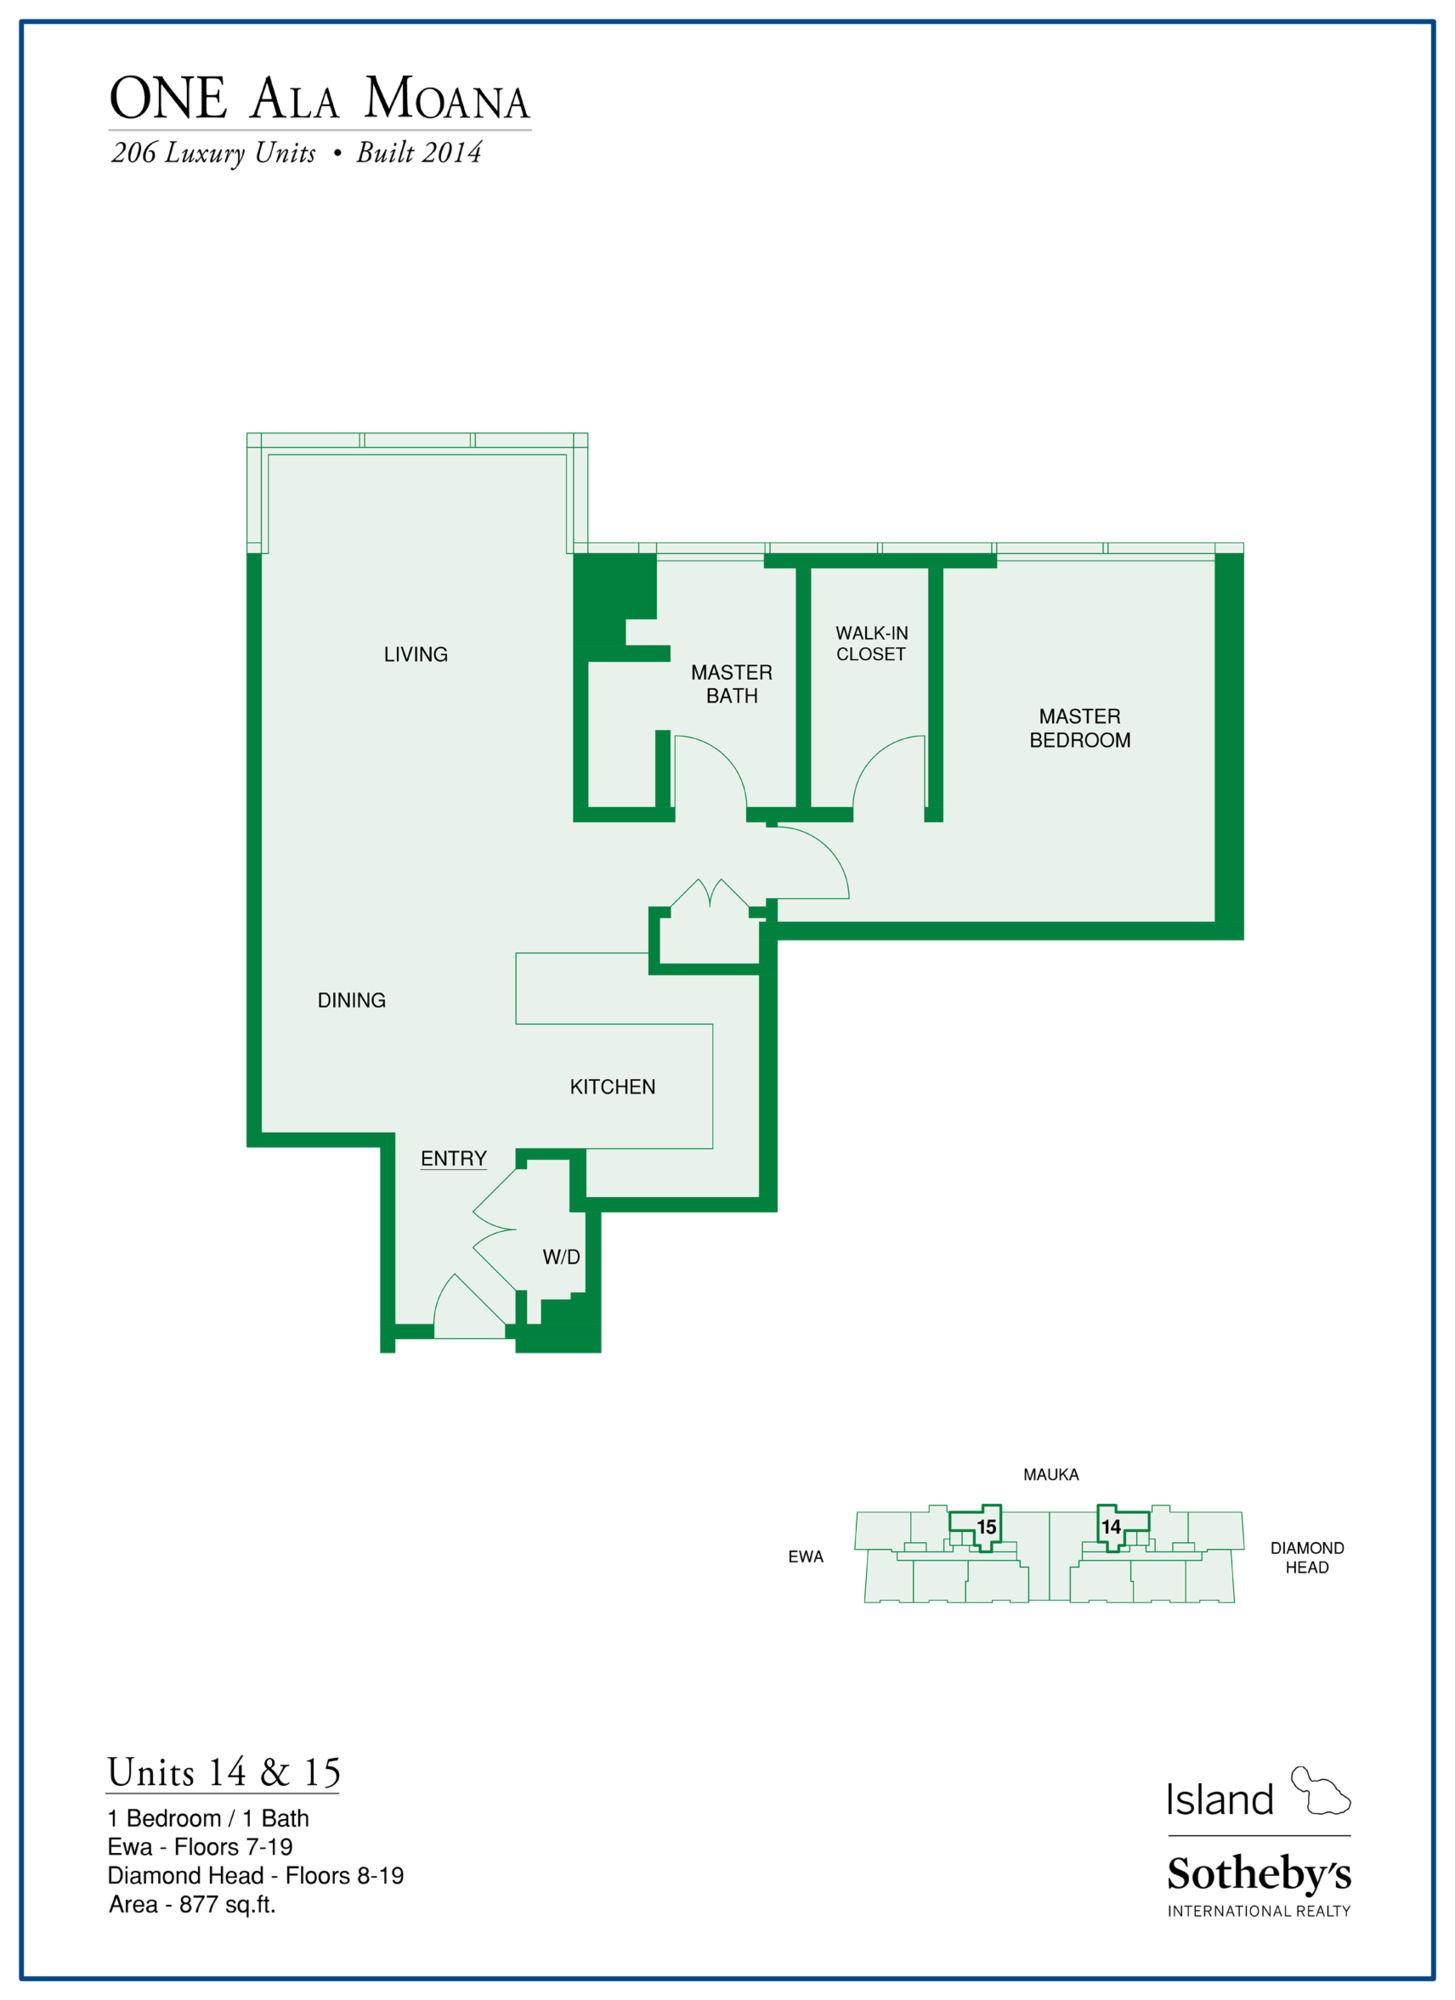 one ala moana floor plan 11 stack